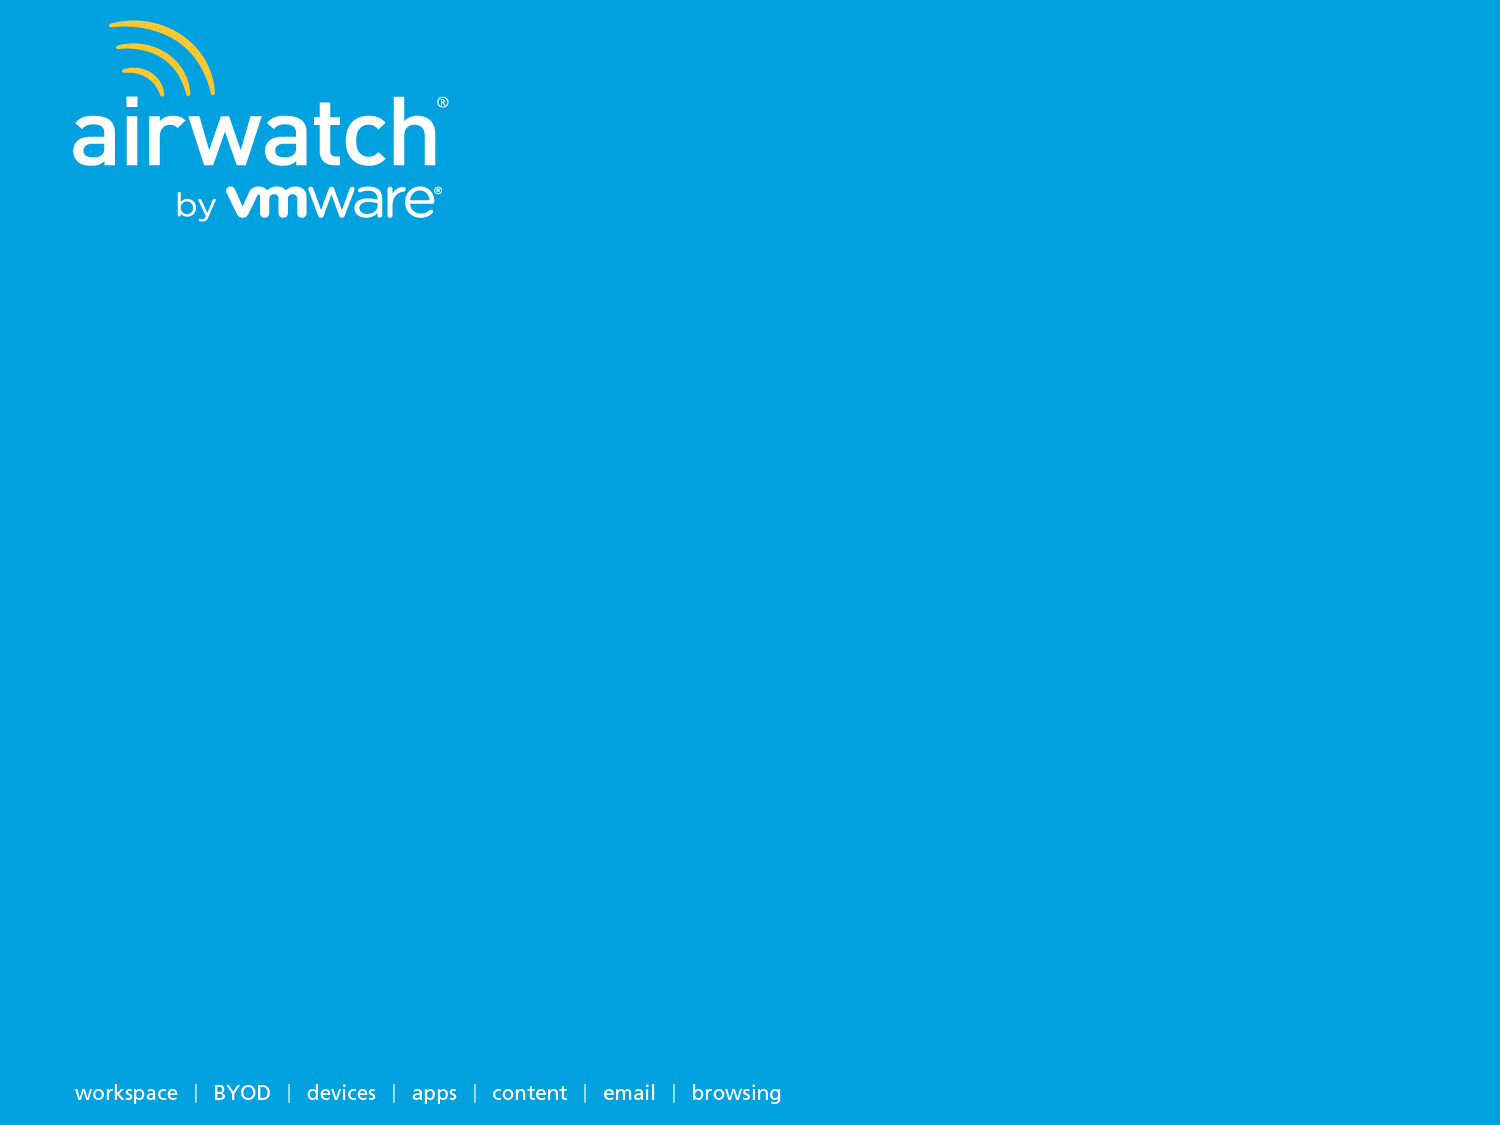 Introducing AirWatch by VMware: Enterprise Mobility